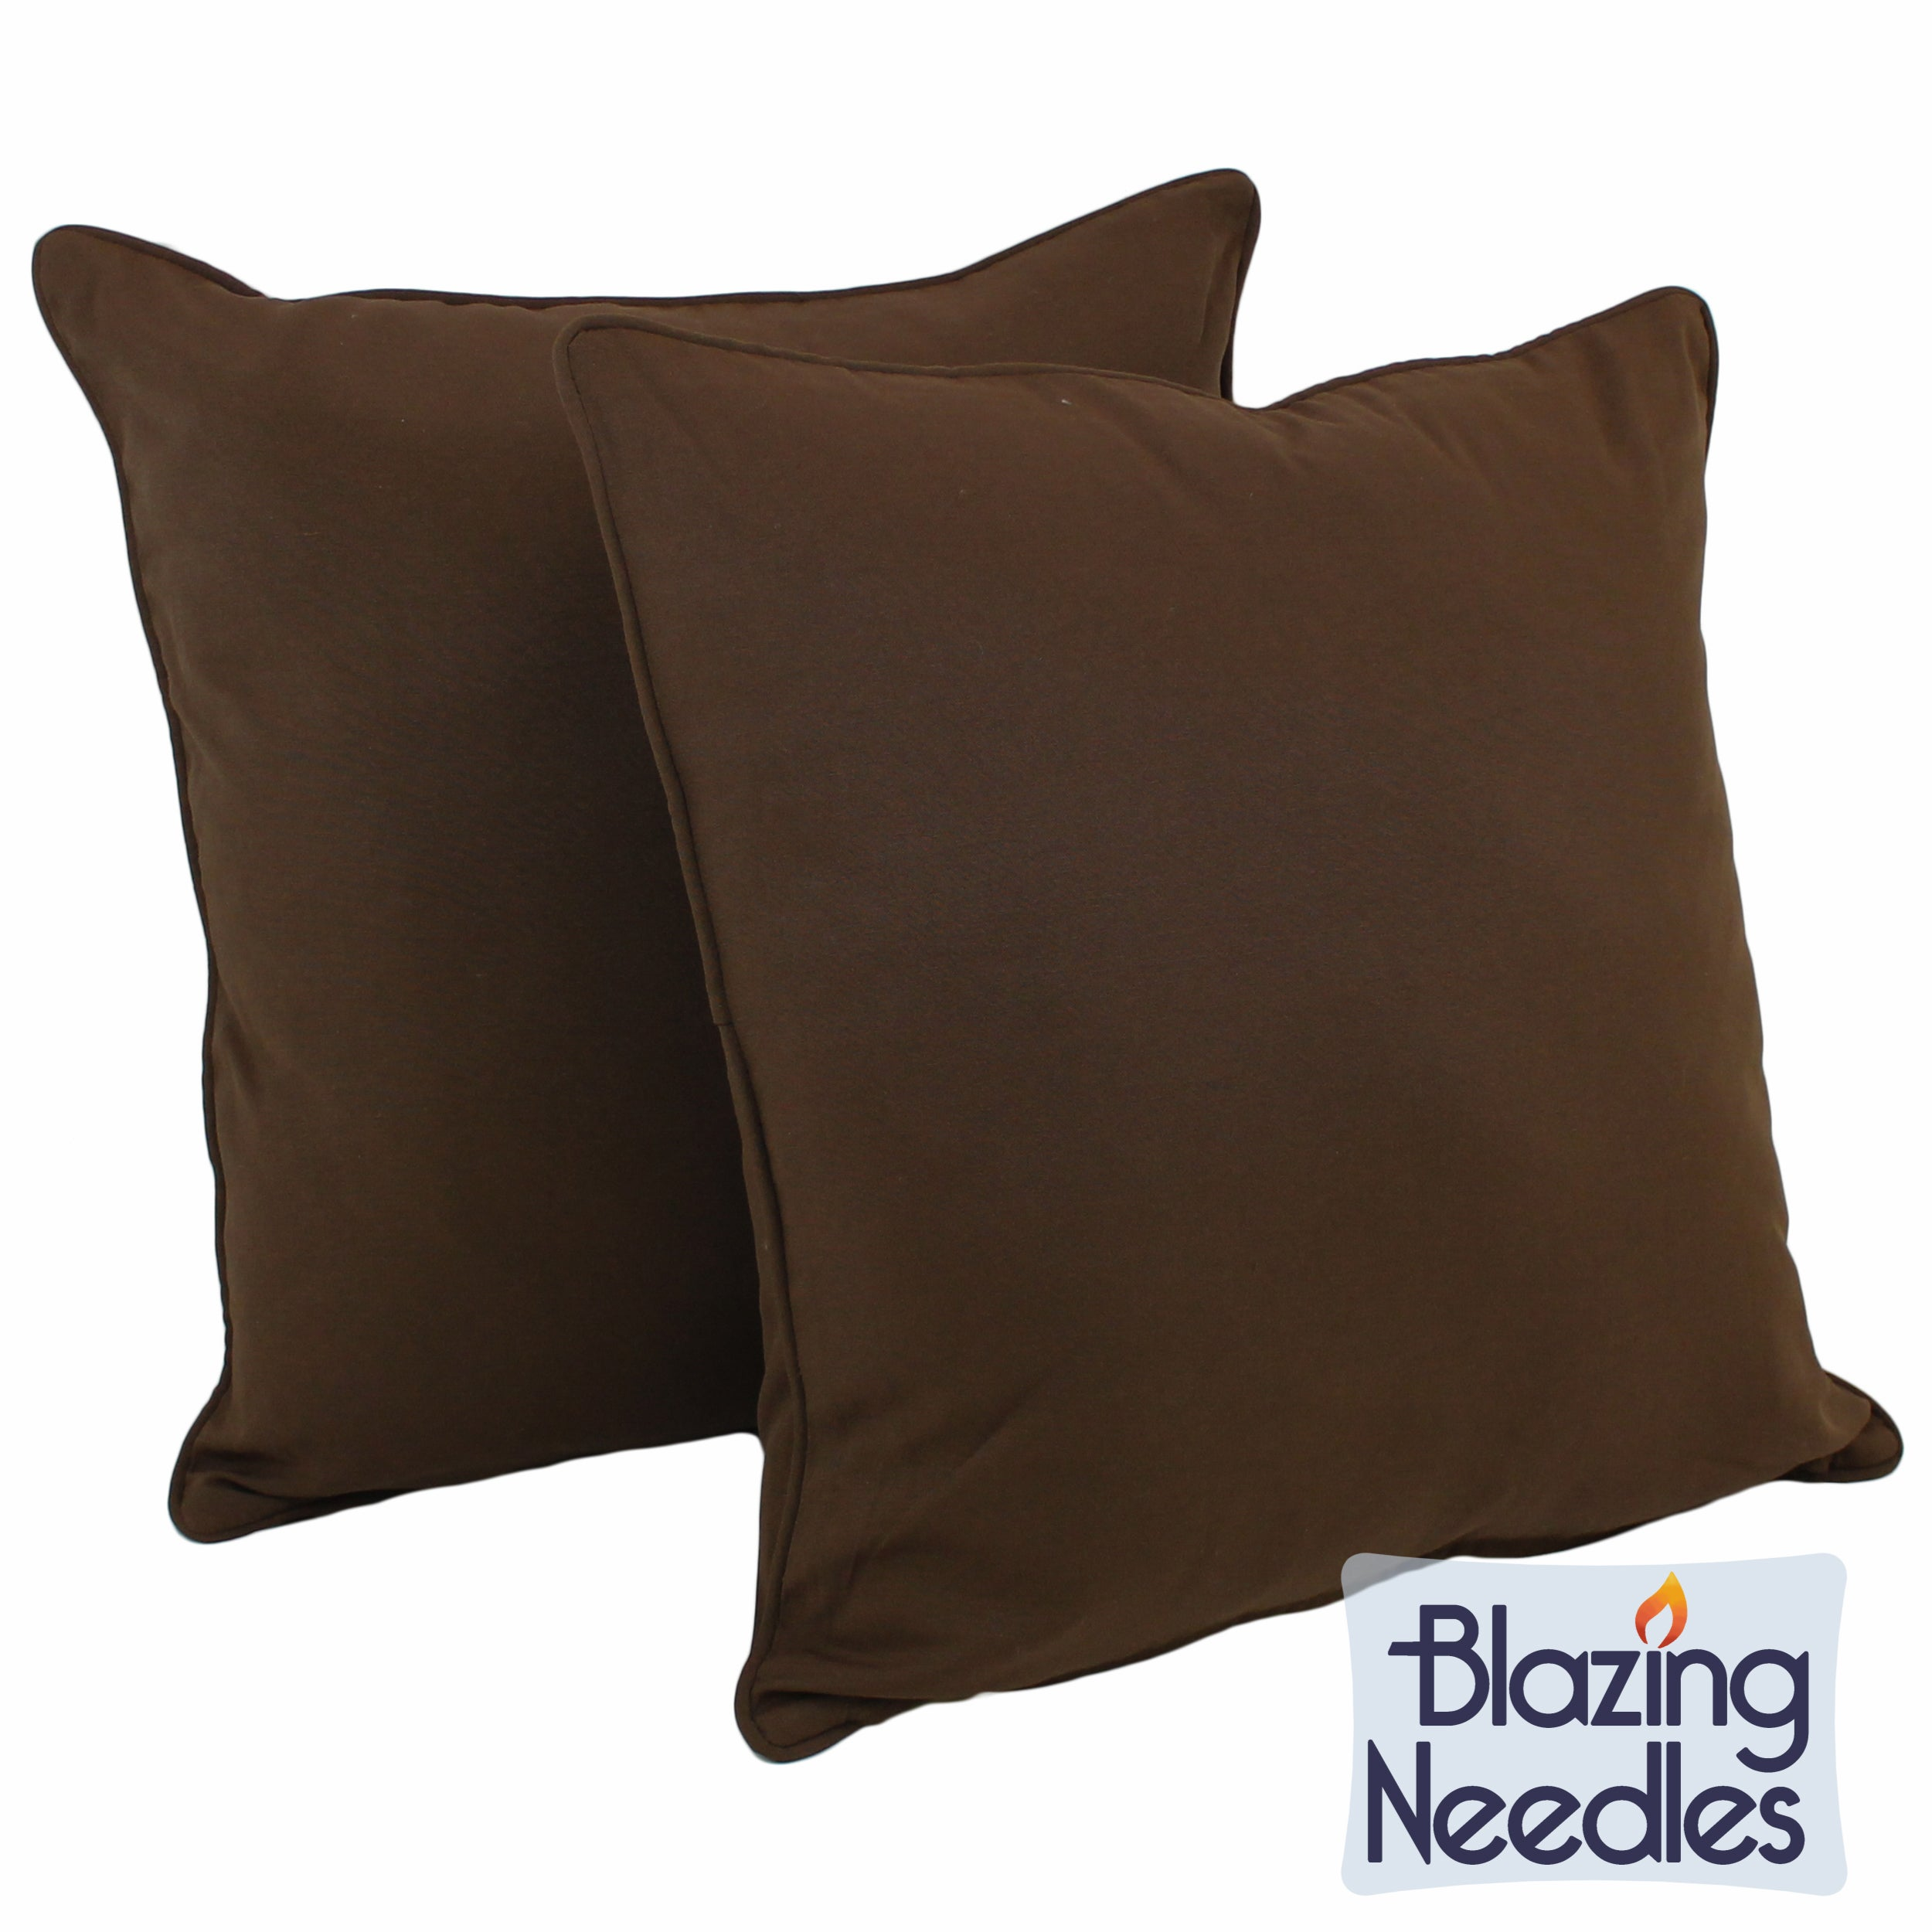 Shop Blazing Needles 25 Inch Throw Pillows Set Of 2